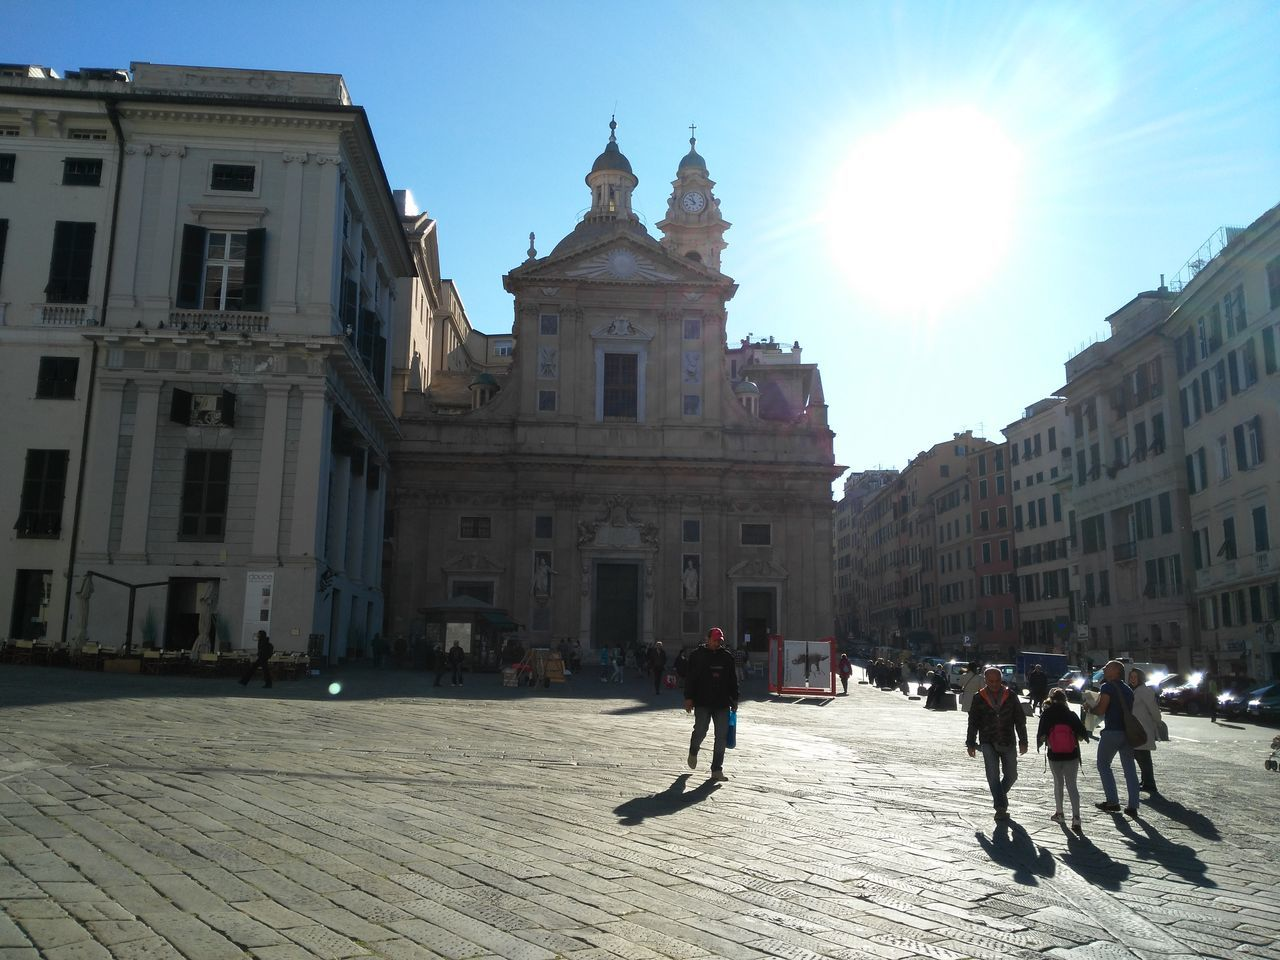 architecture, building exterior, built structure, sunlight, sky, real people, sun, outdoors, city, place of worship, spirituality, day, large group of people, travel destinations, men, people